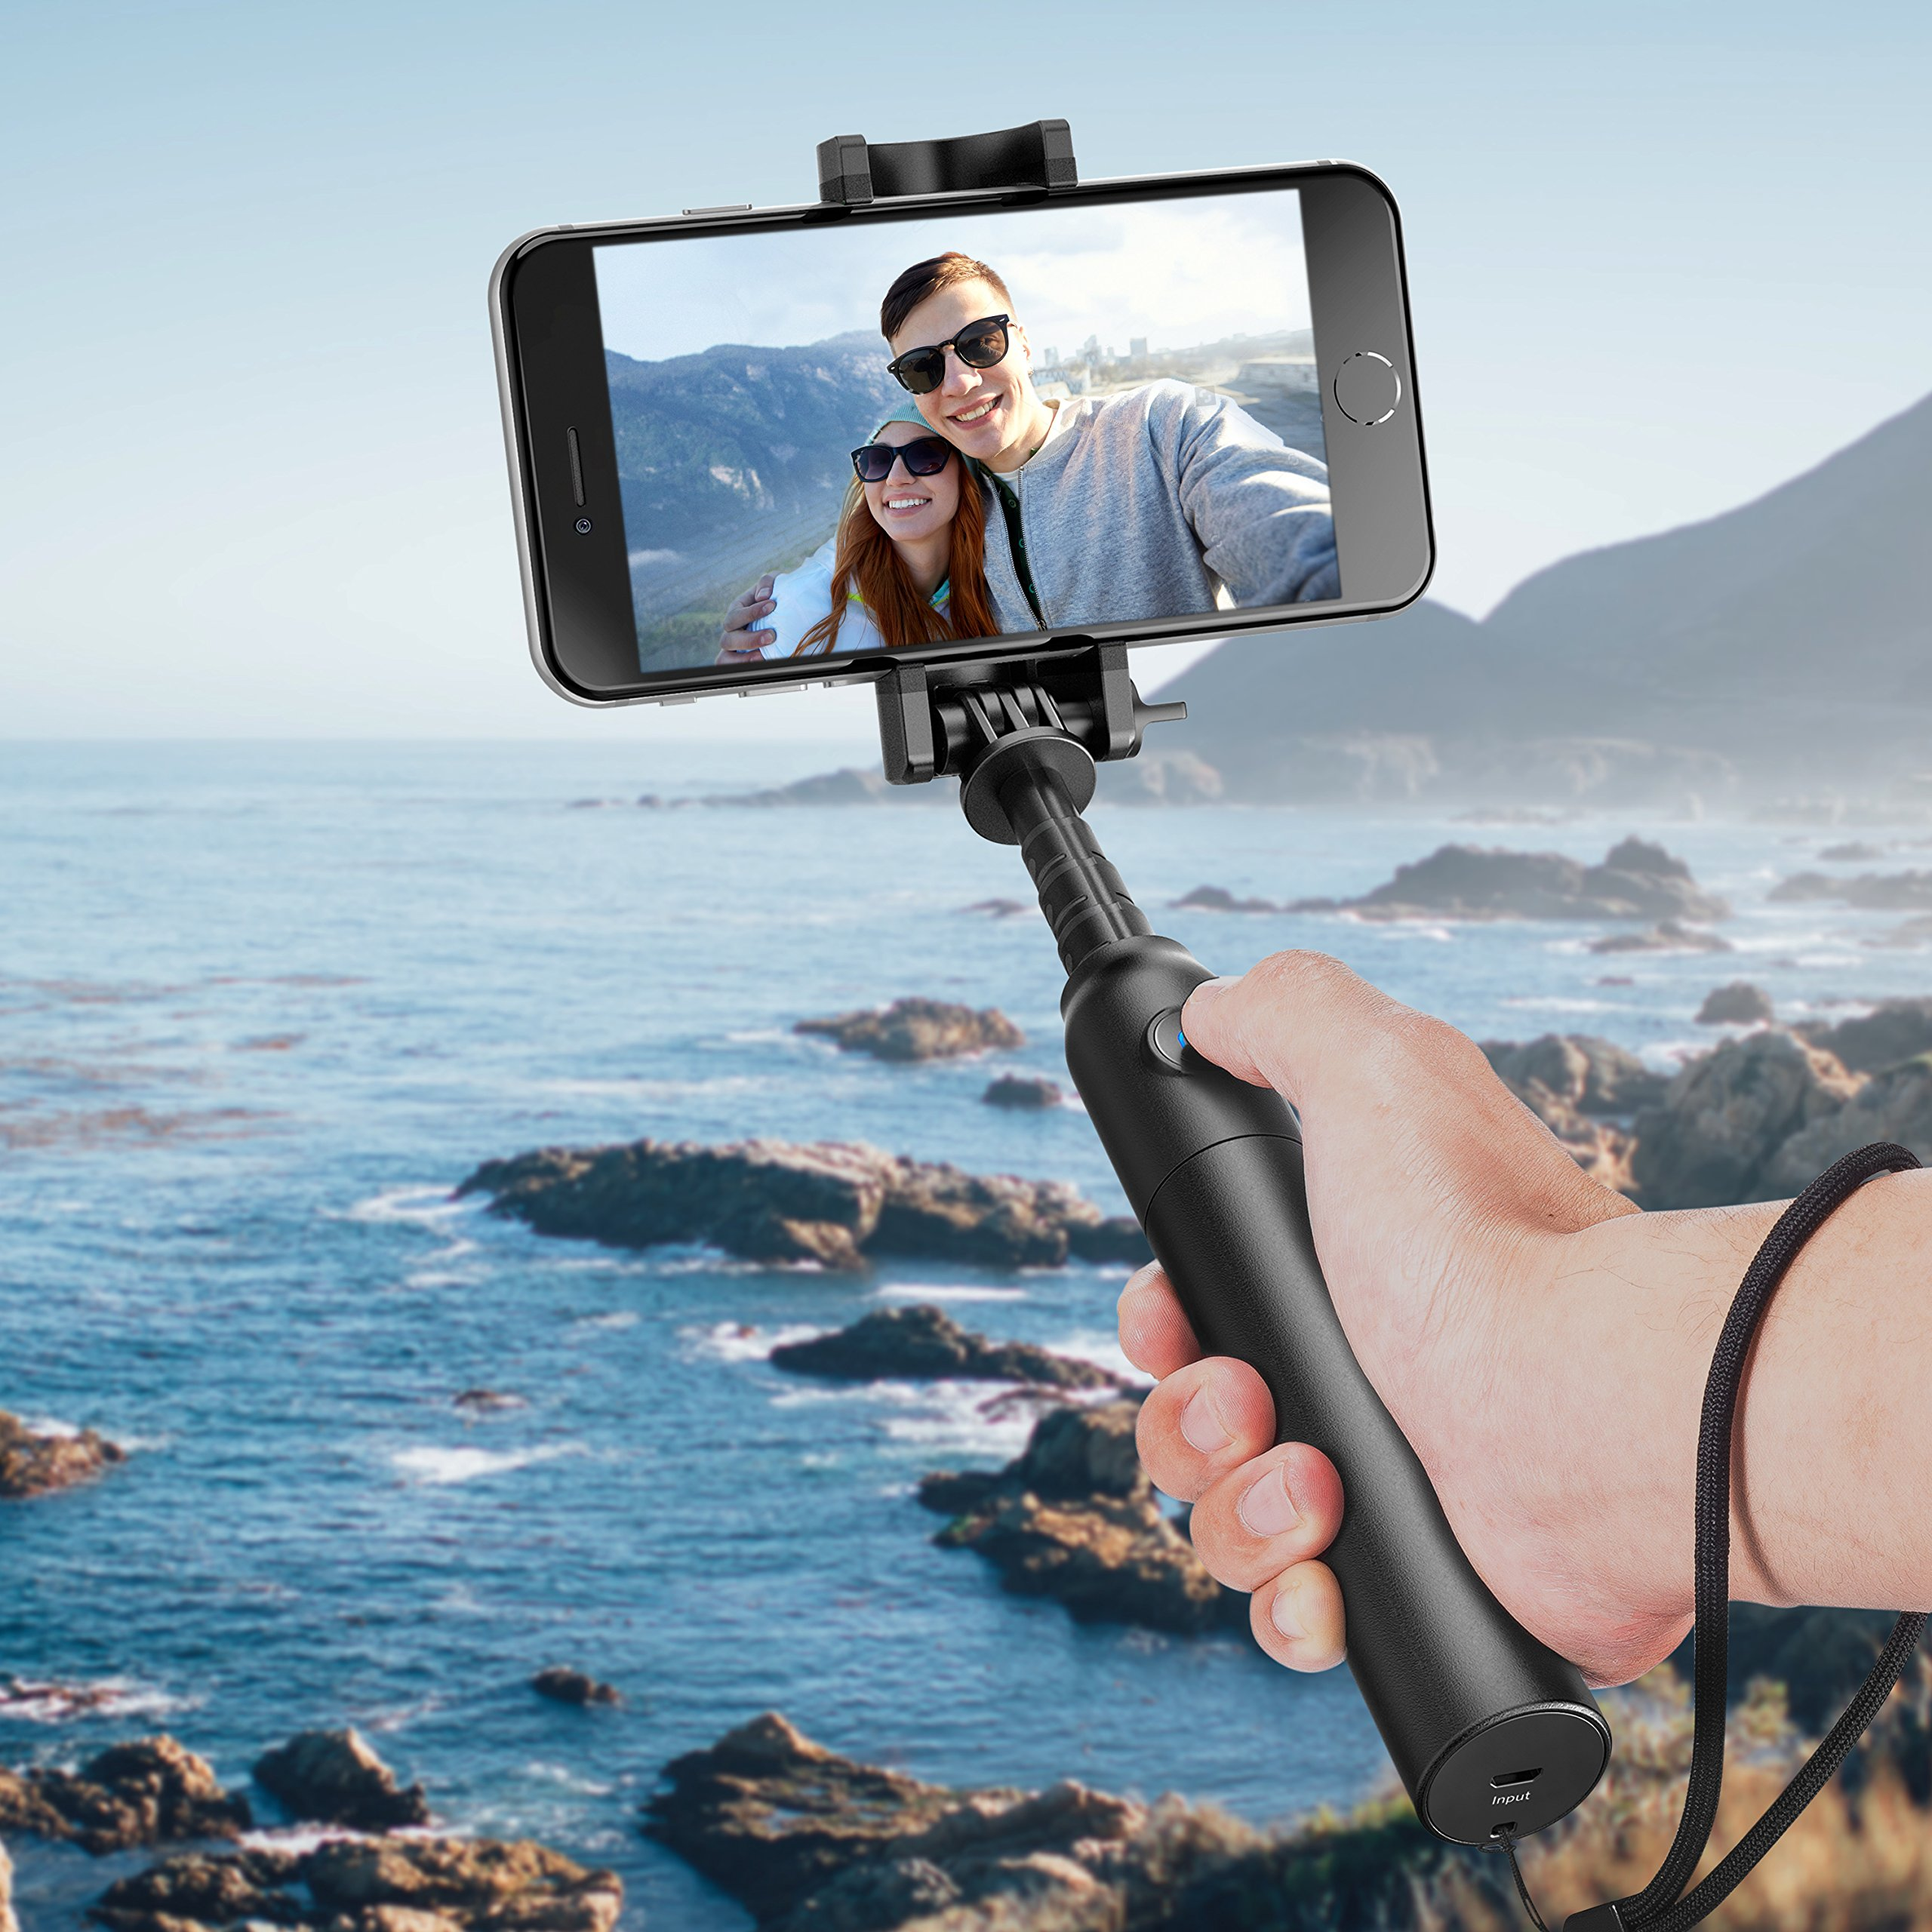 Selfie Stick, Anker Bluetooth Highly-Extendable and Compact Handheld Monopod with 20-Hour Battery Life for iPhone X/8/8 Plus/7/7 Plus/Se/6s/6/6 Plus, Galaxy S8/S7/S6/Edge, LG G5, Pixel 2 and More by Anker (Image #7)